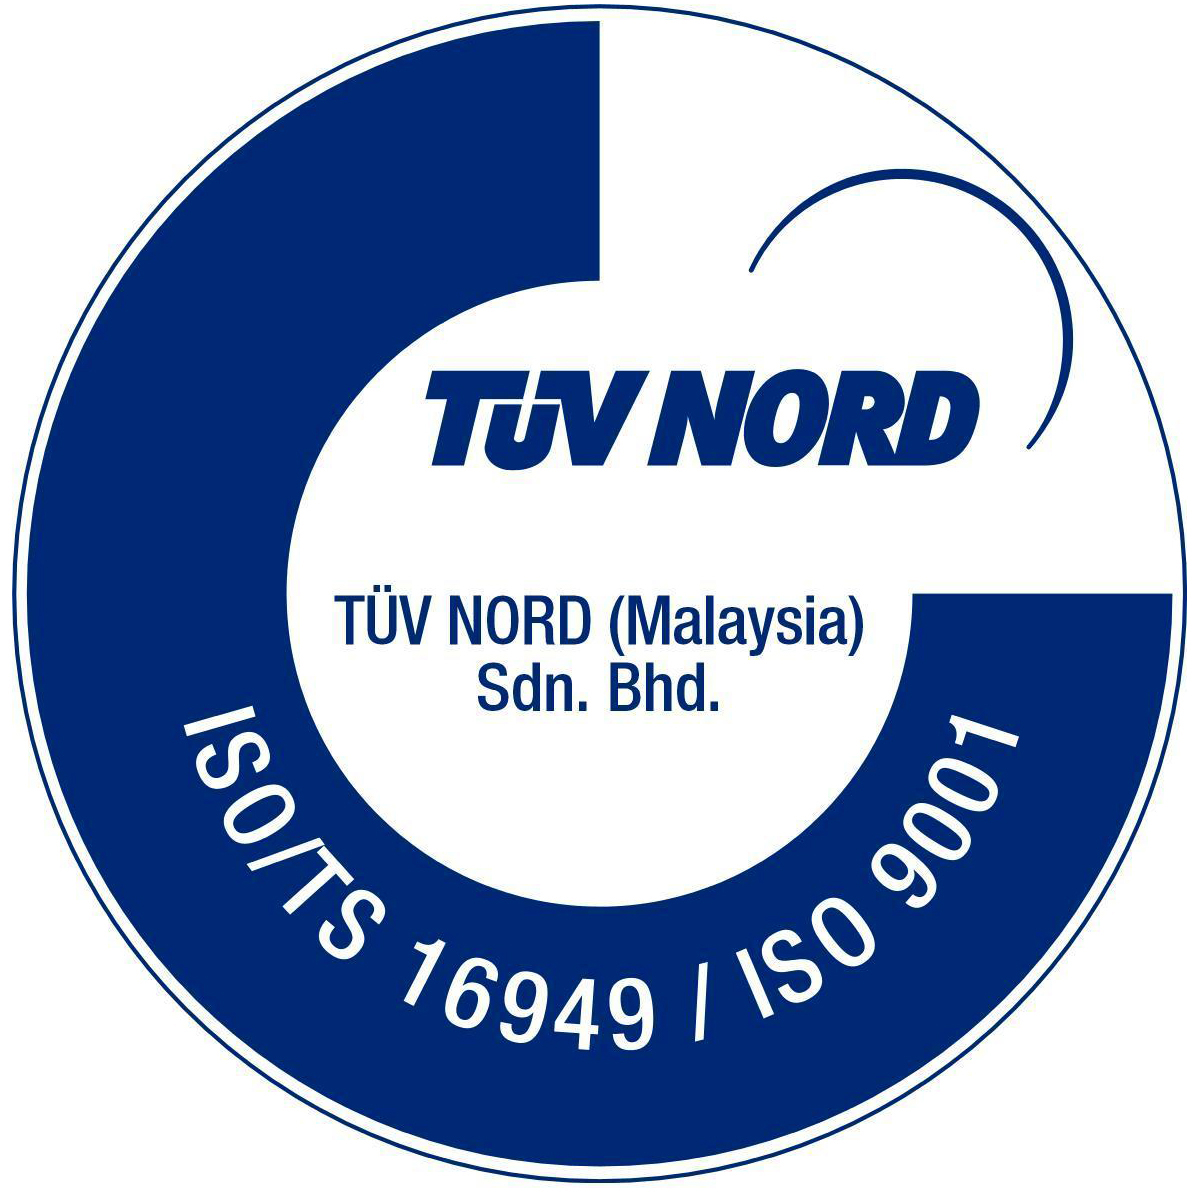 TUV Nord copy.jpg